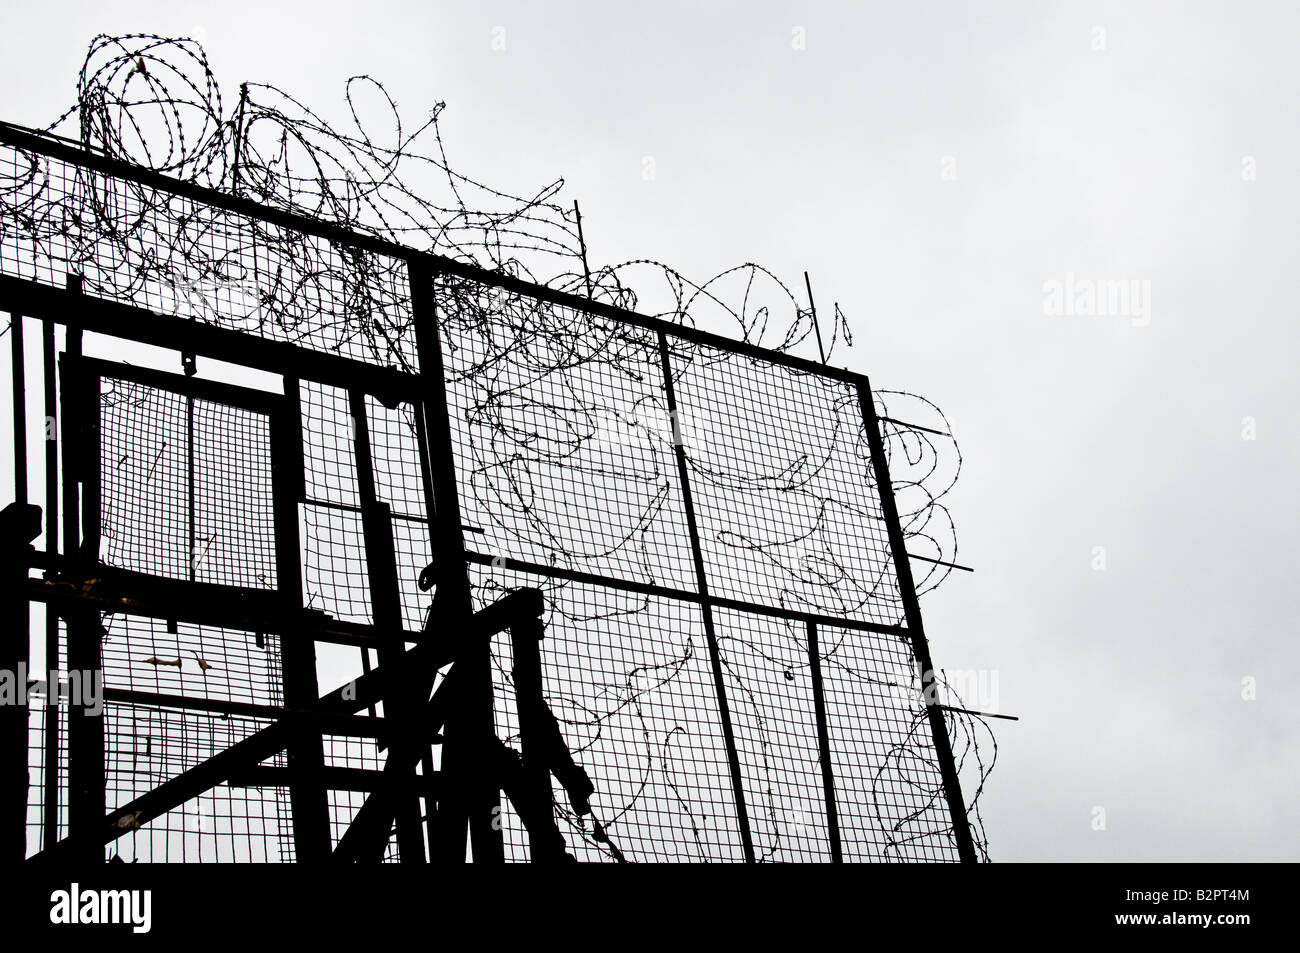 Barbed Wire Gate Stock Photos & Barbed Wire Gate Stock Images - Page ...